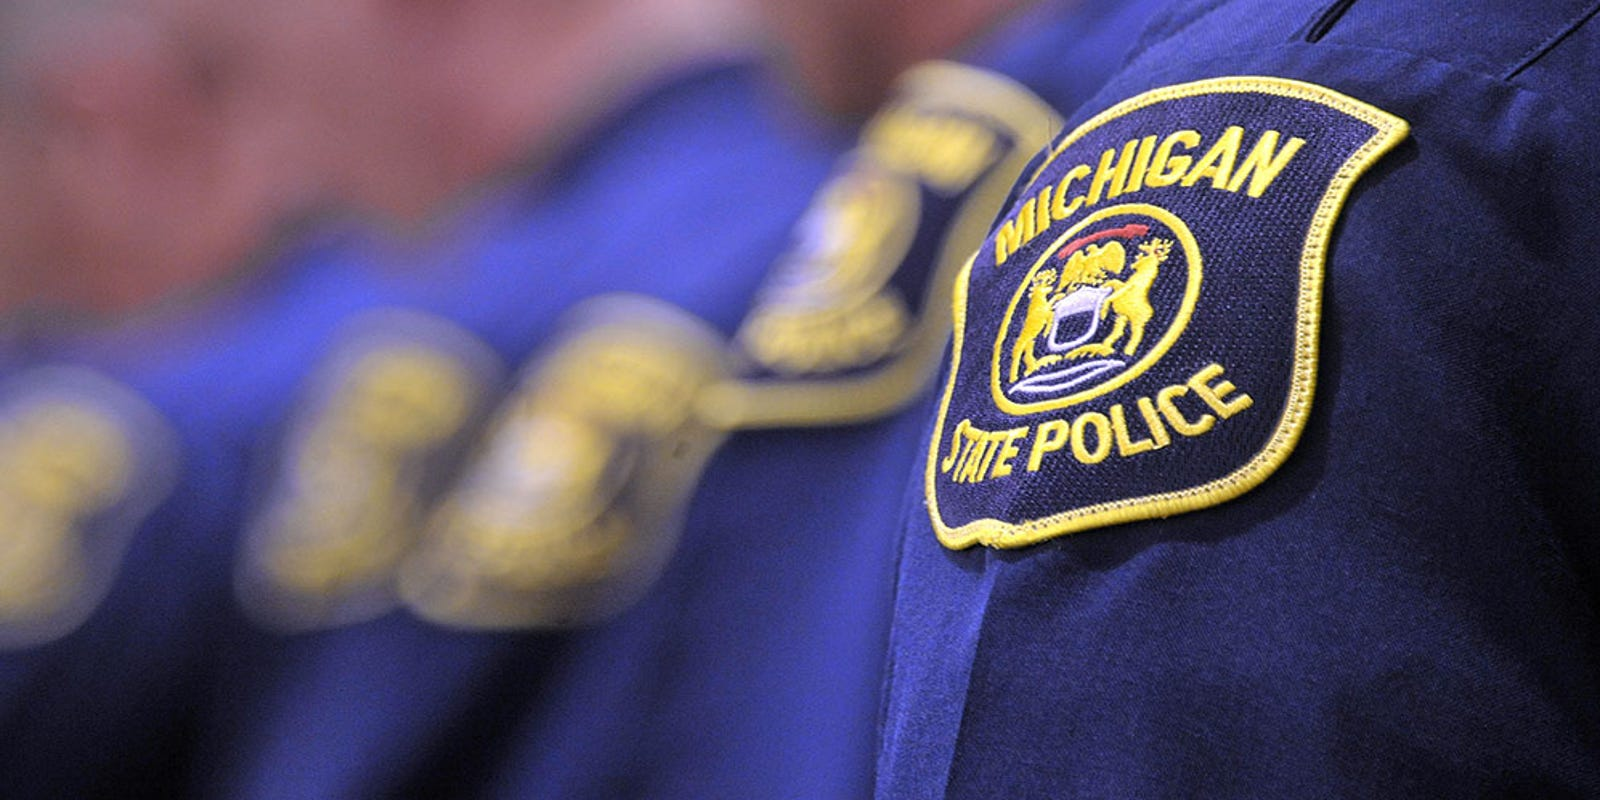 Michigan State Police using secret cell tracking devices since '06, documents show